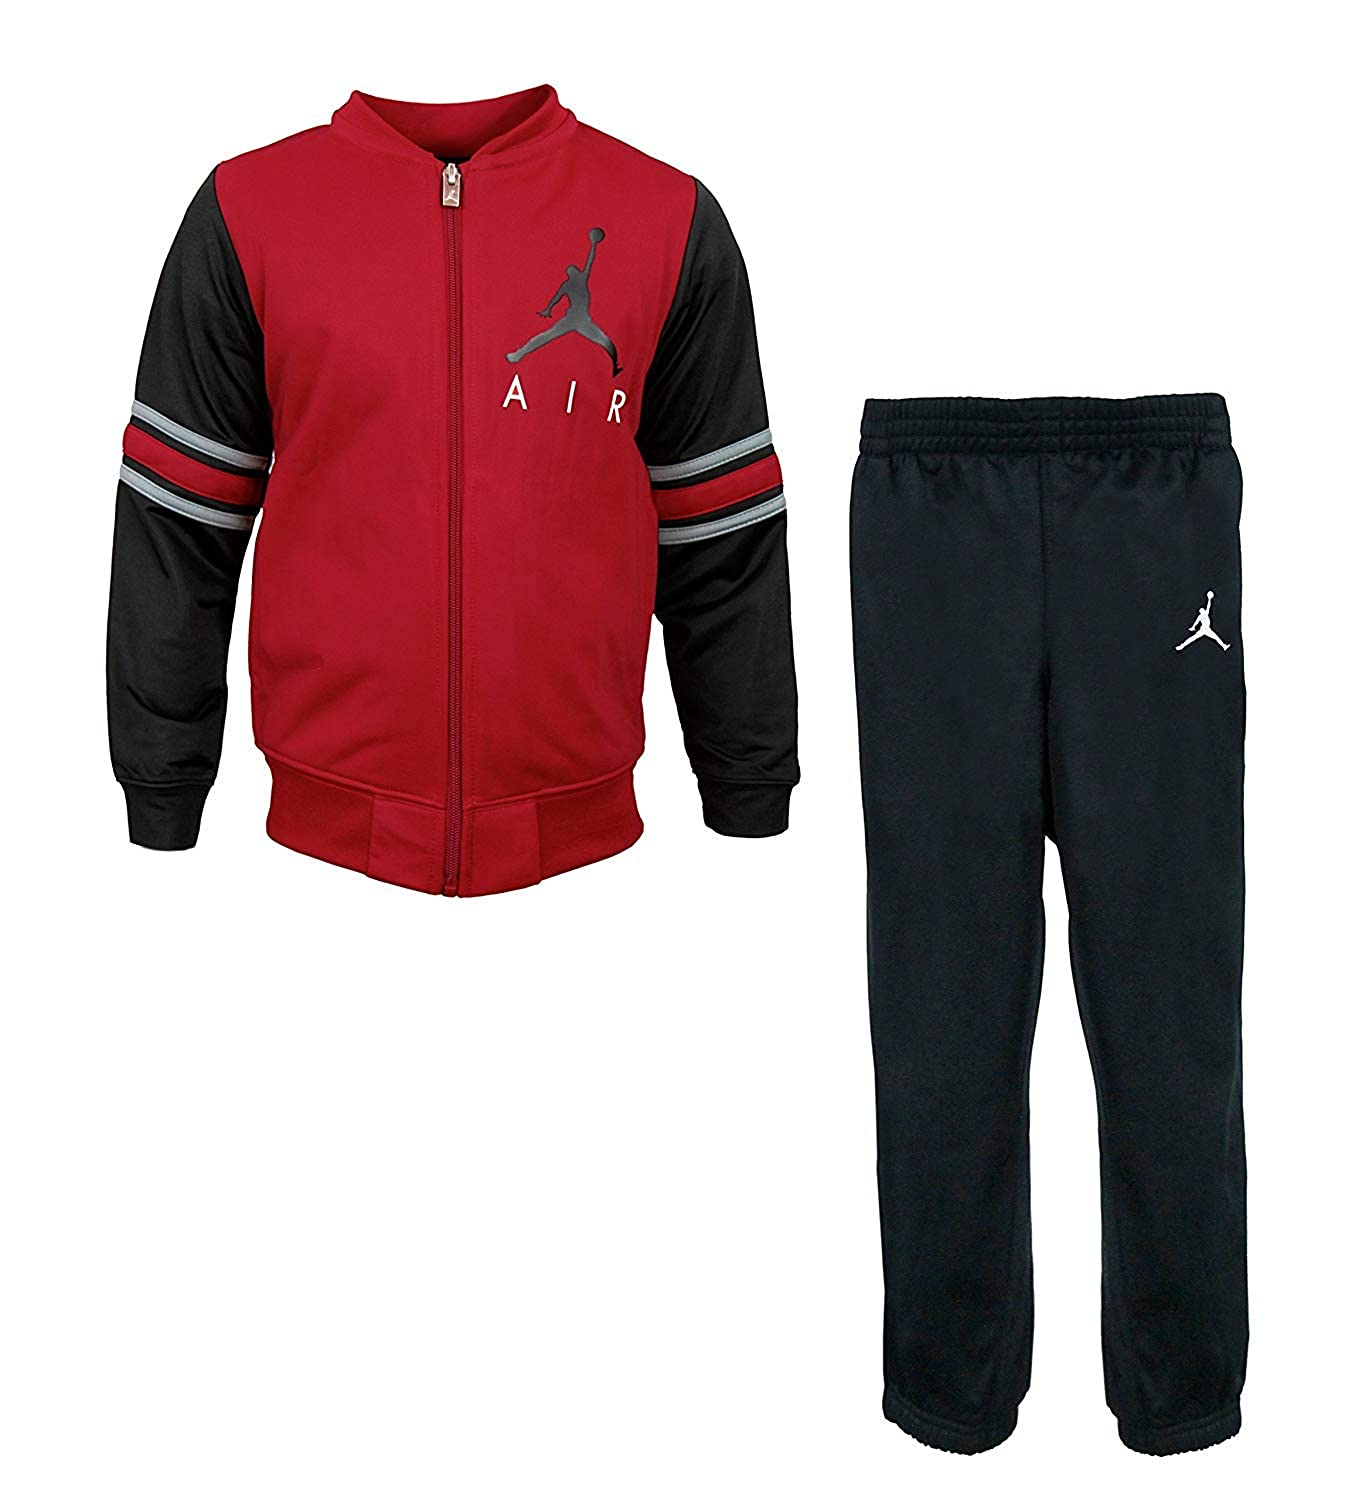 c2bd08981d6 Amazon.com: Jordan Nike Air Boys' Jacket Tracksuit Pants Outfit Track Set:  Baby